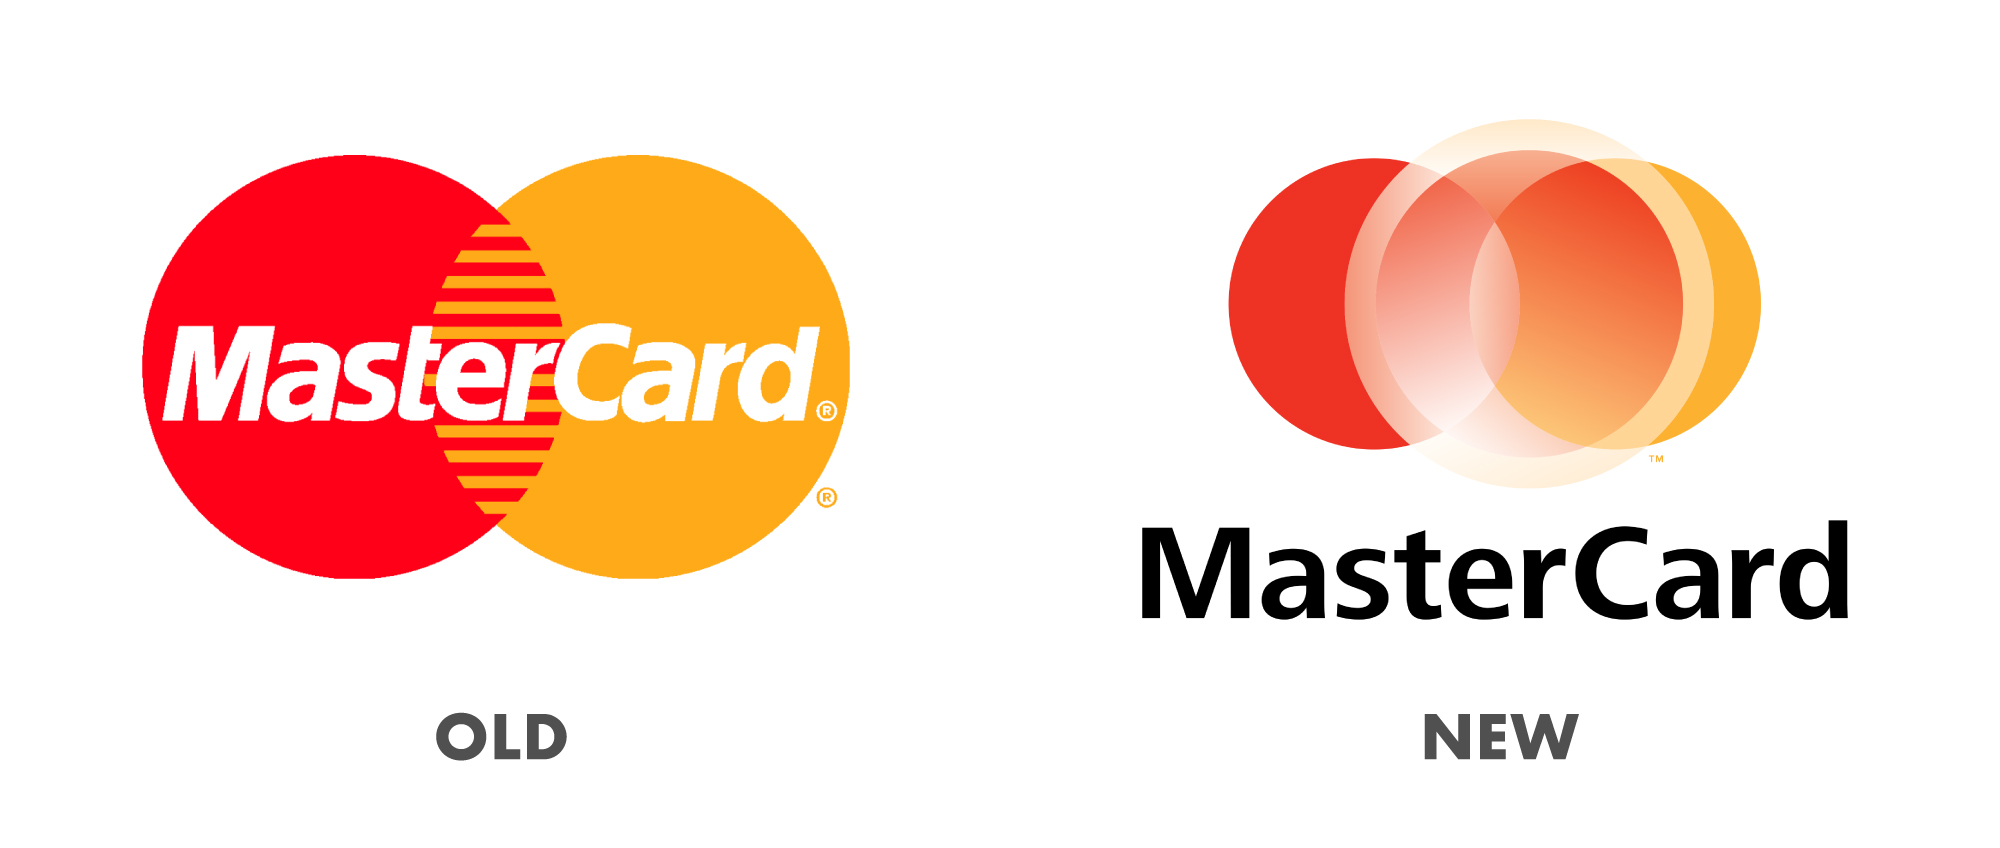 Failed rebrands - why they are classed as a failure. Old and new mastercard logos